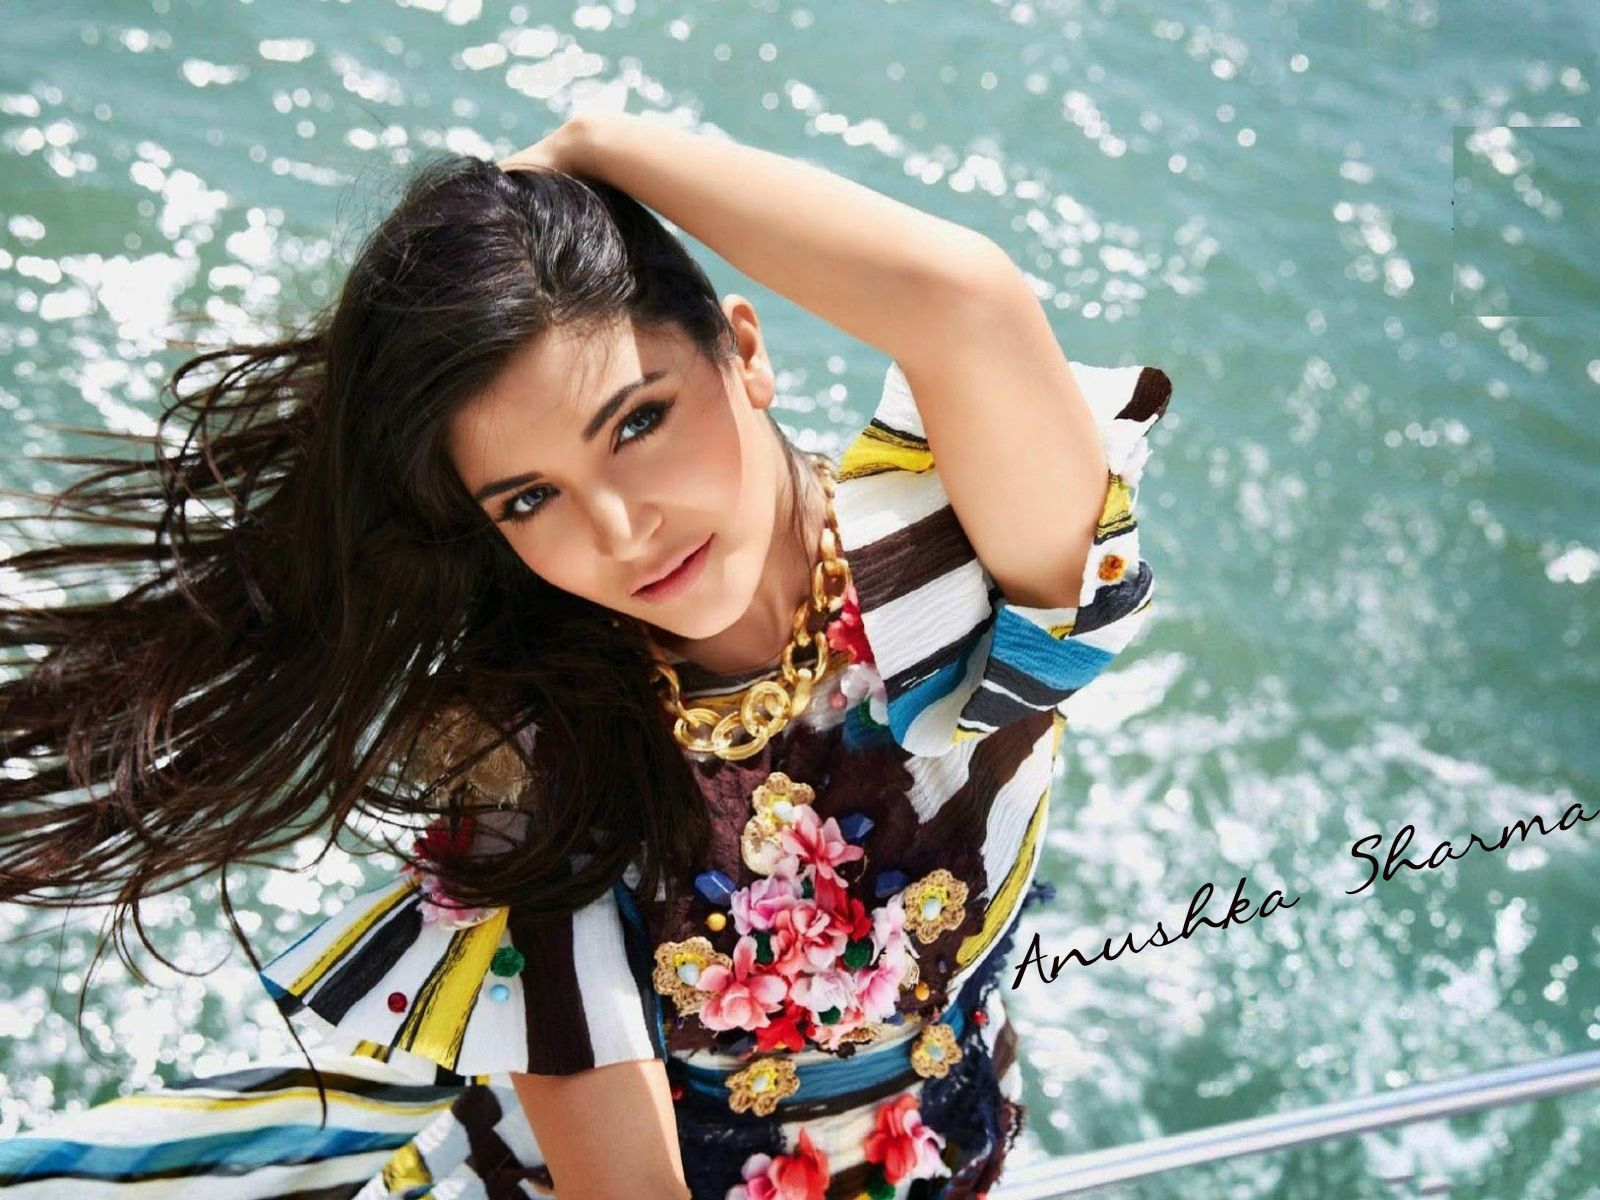 Anushka Sharma Hot Hd Wallpapers Anushka Sharma , Hot -8678